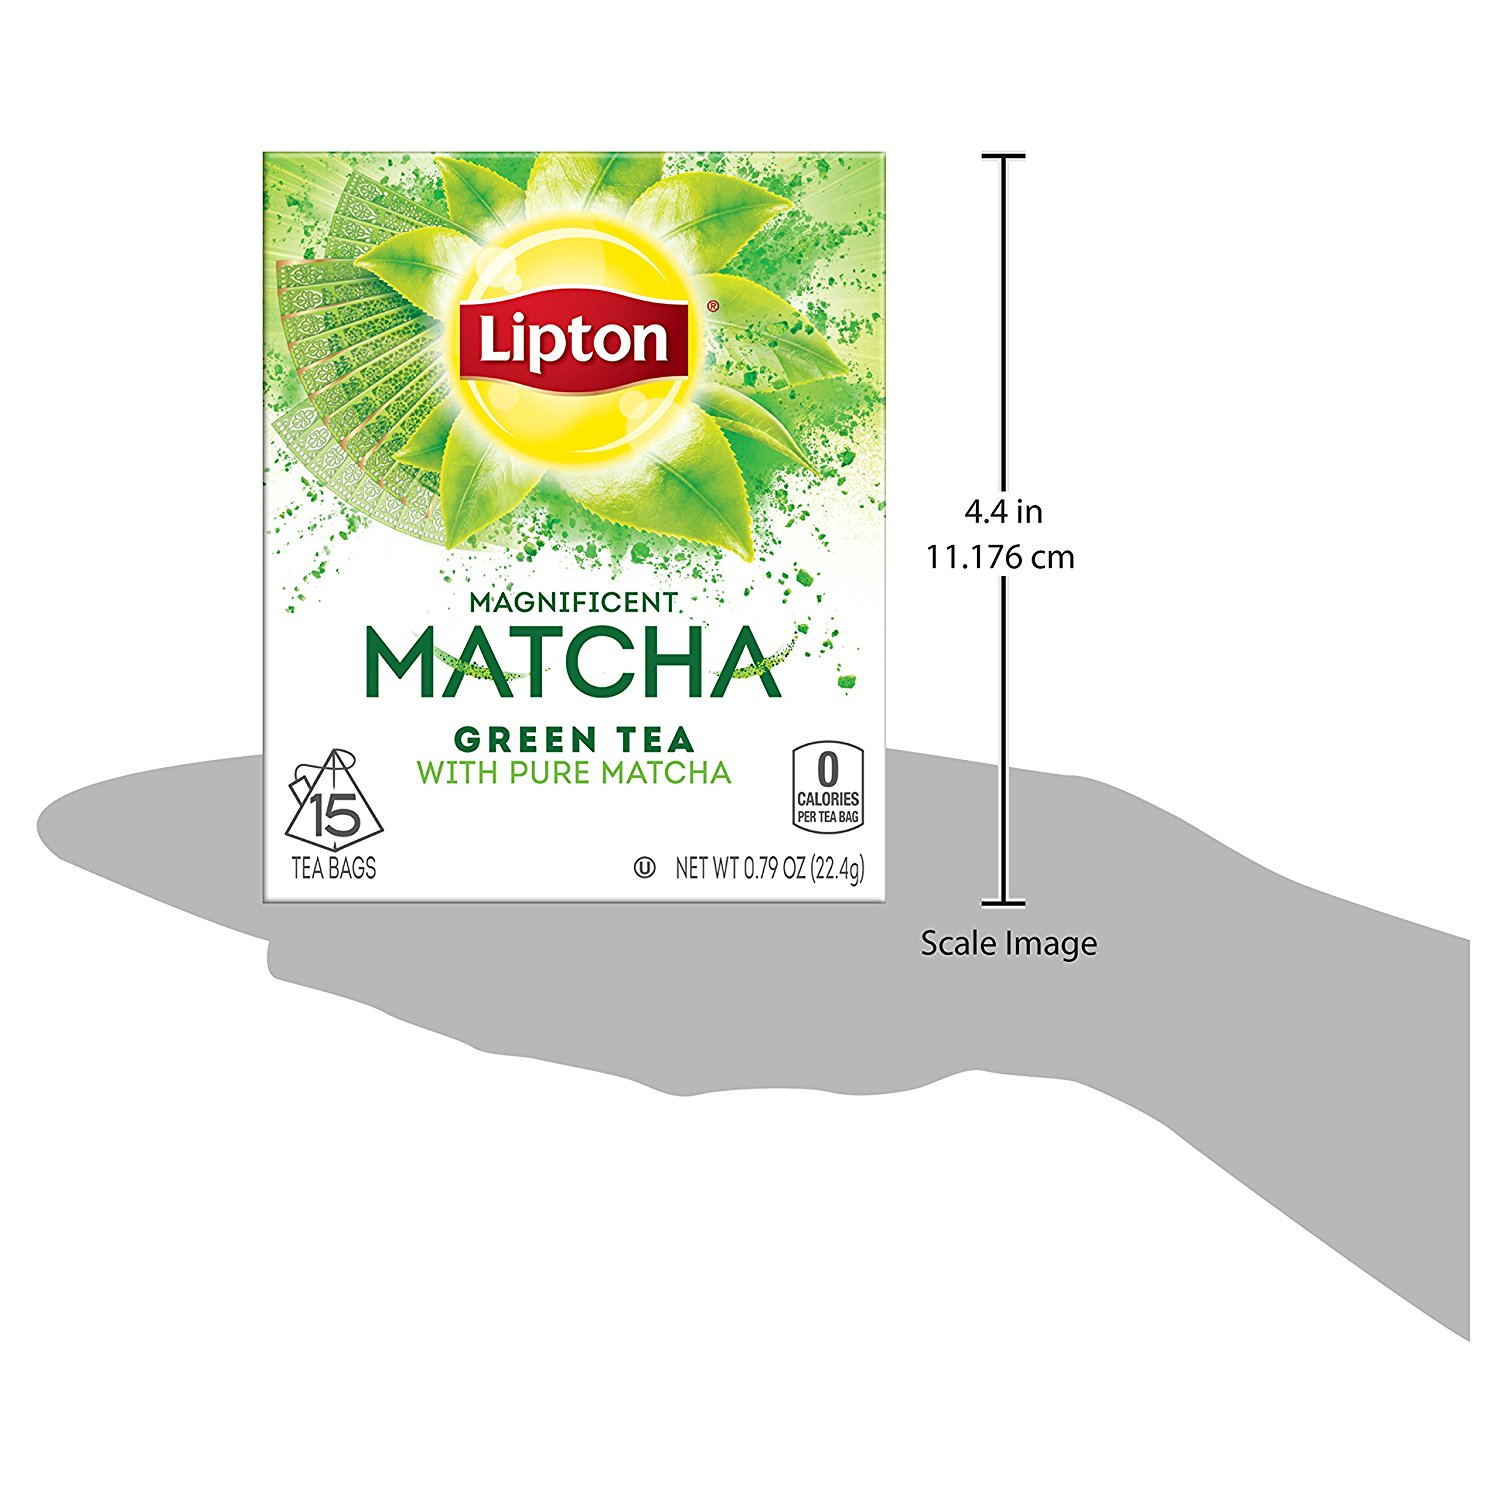 Green tea is about 30 percent polyphenols by weight, including large amounts of a catechin called EGCG. Catechins are natural antioxidants that help prevent cell damage and provide other benefits.